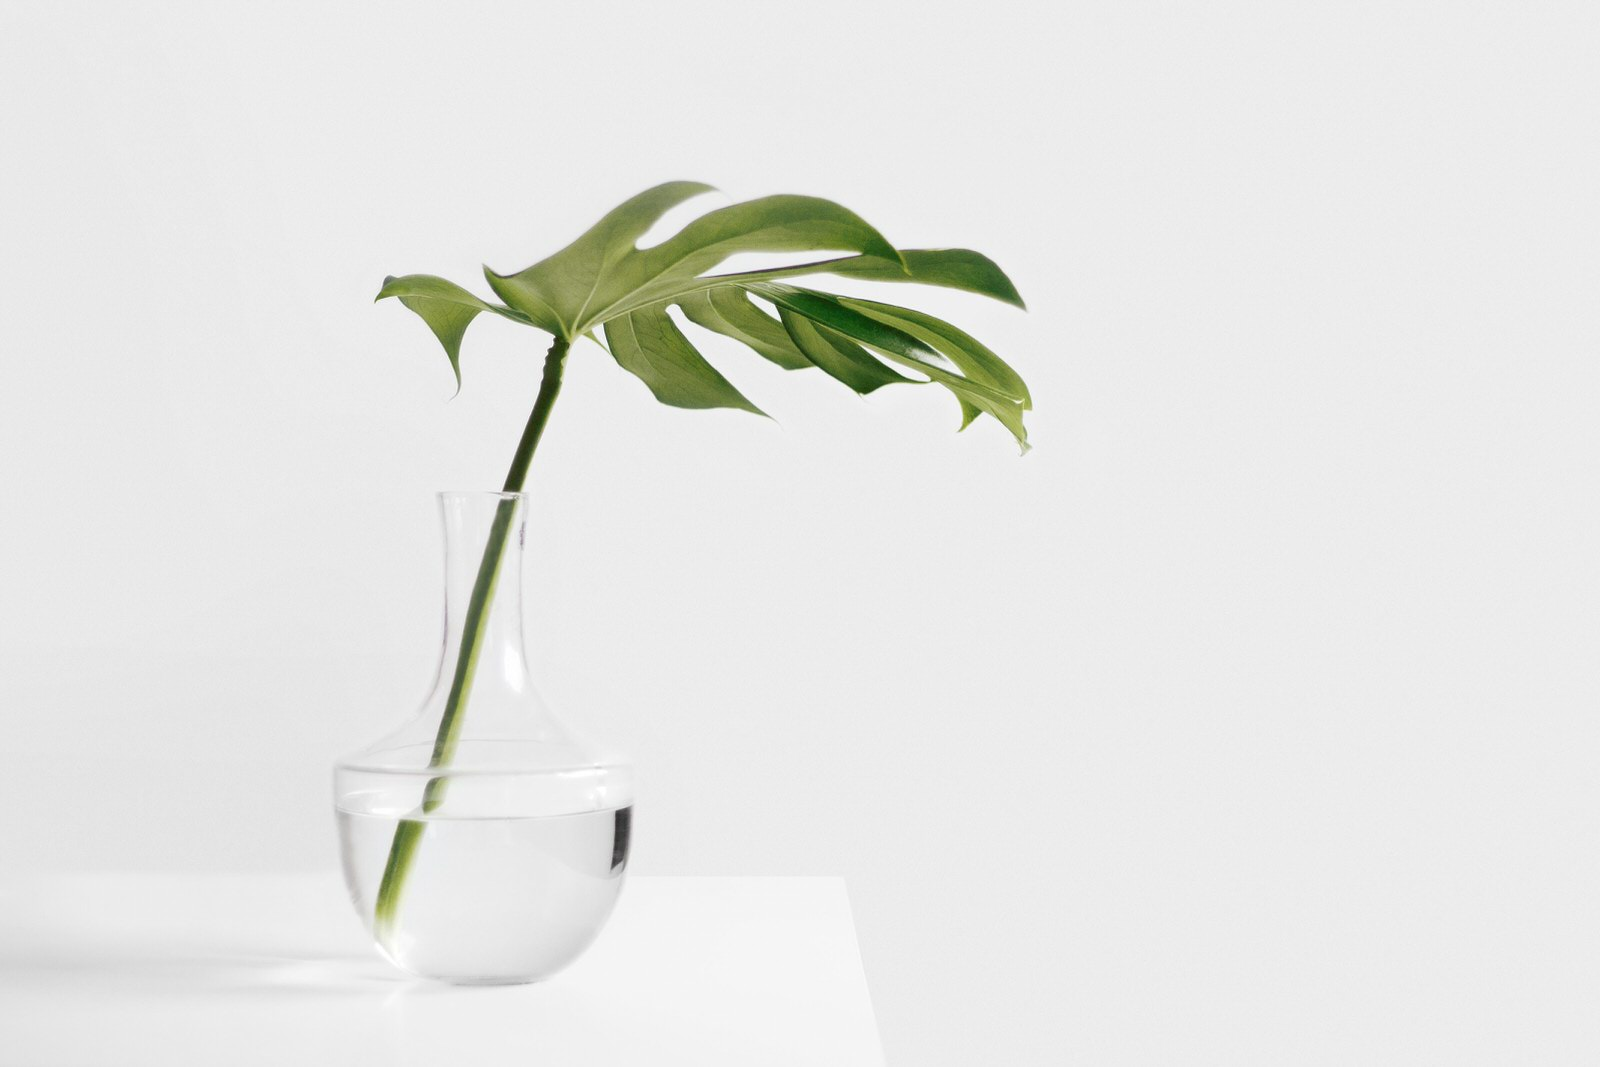 Plant clipping in water